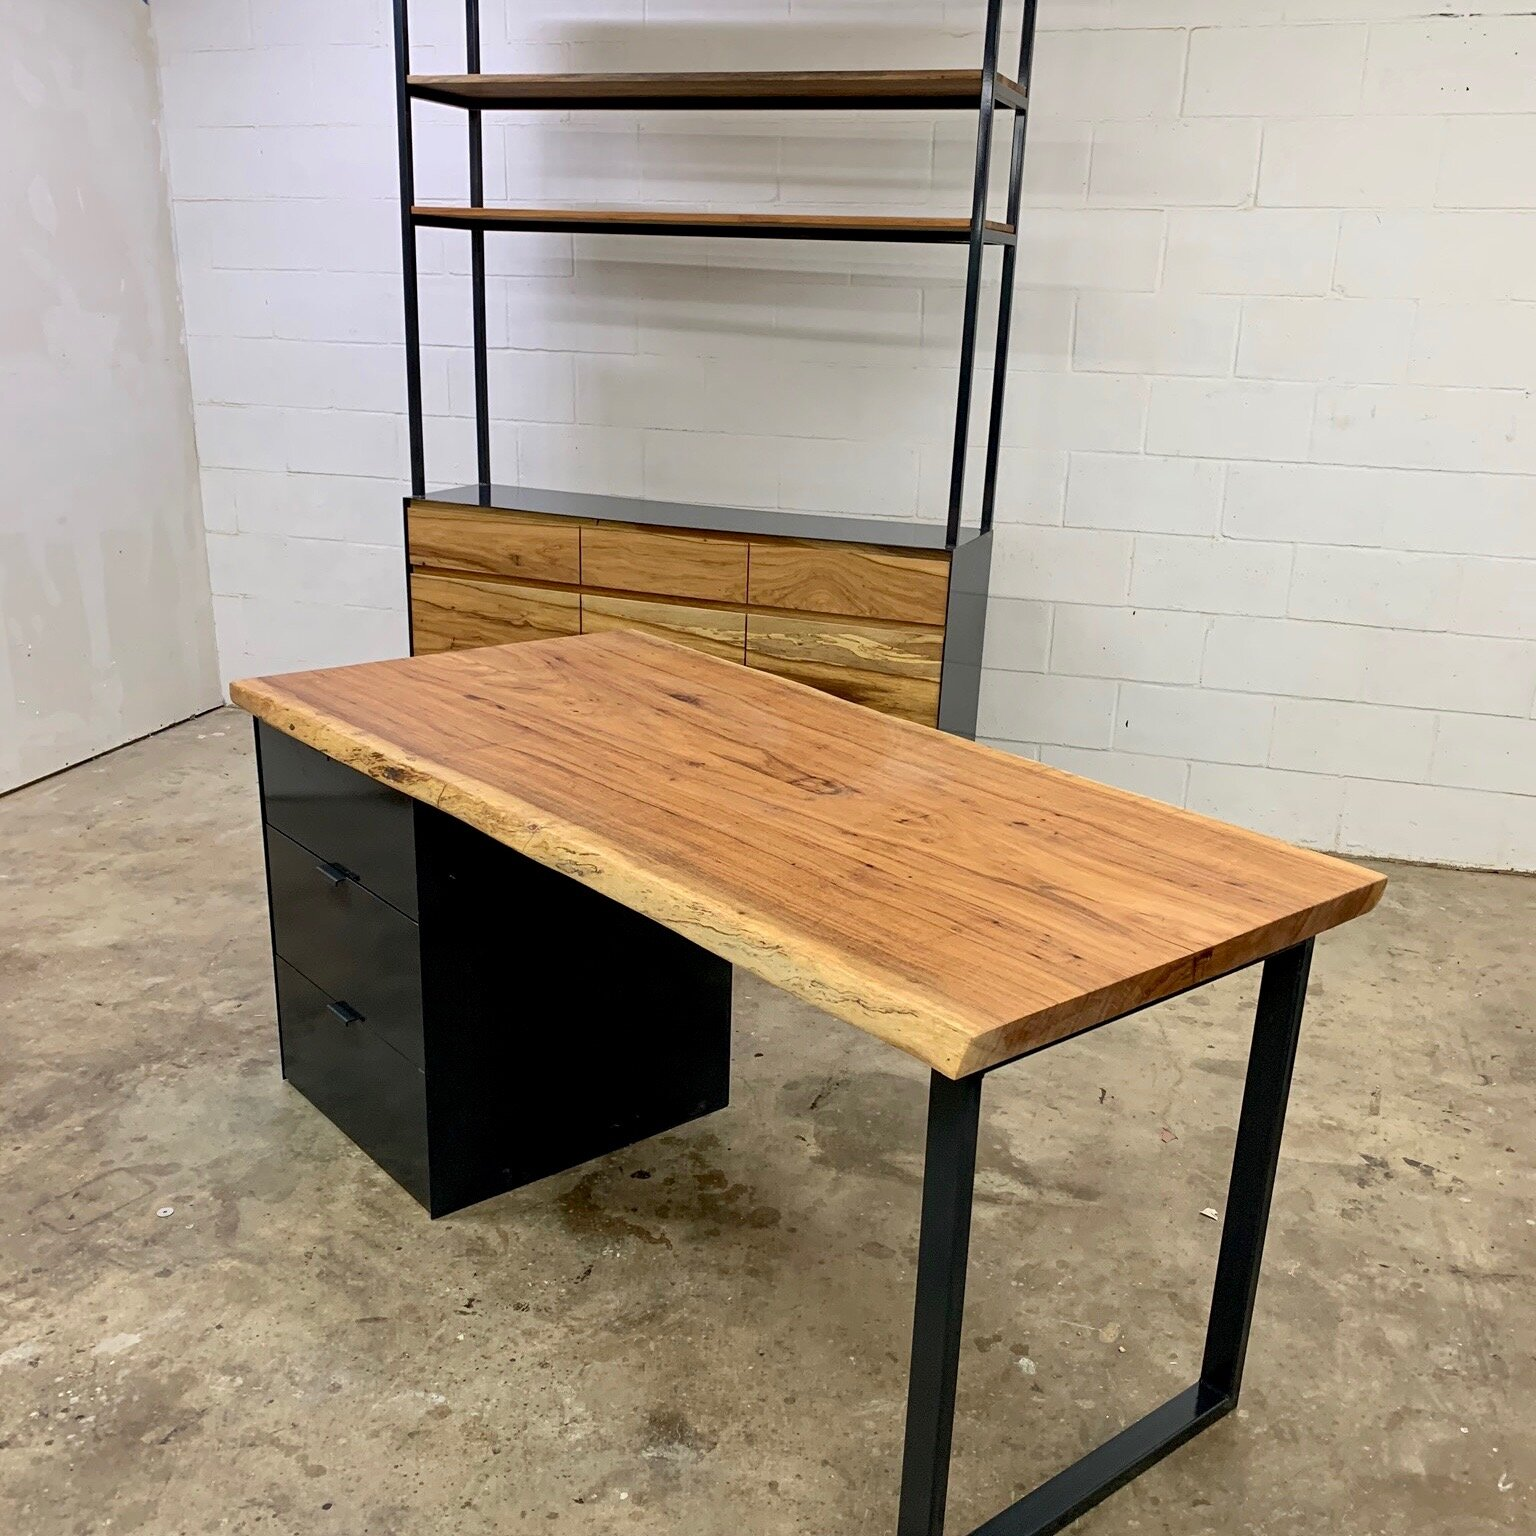 Pecan & Charcoal Desk and Bookcase